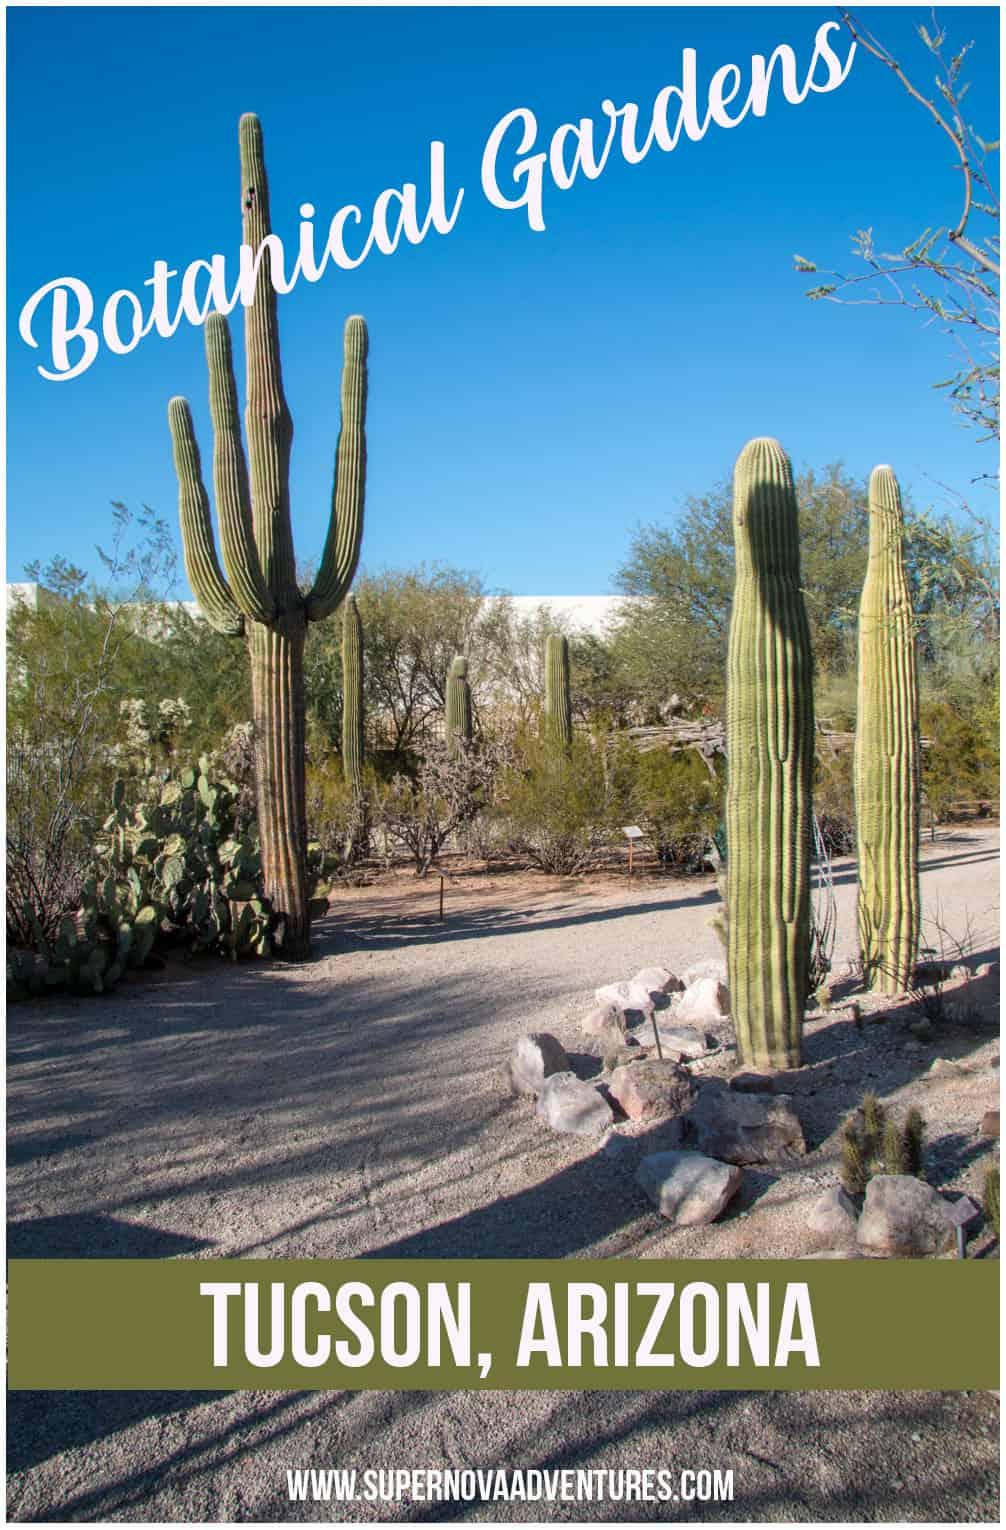 Review and photos of the Tucson Botanical Gardens in Arizona. Stunning desert landscape and gardens in the city